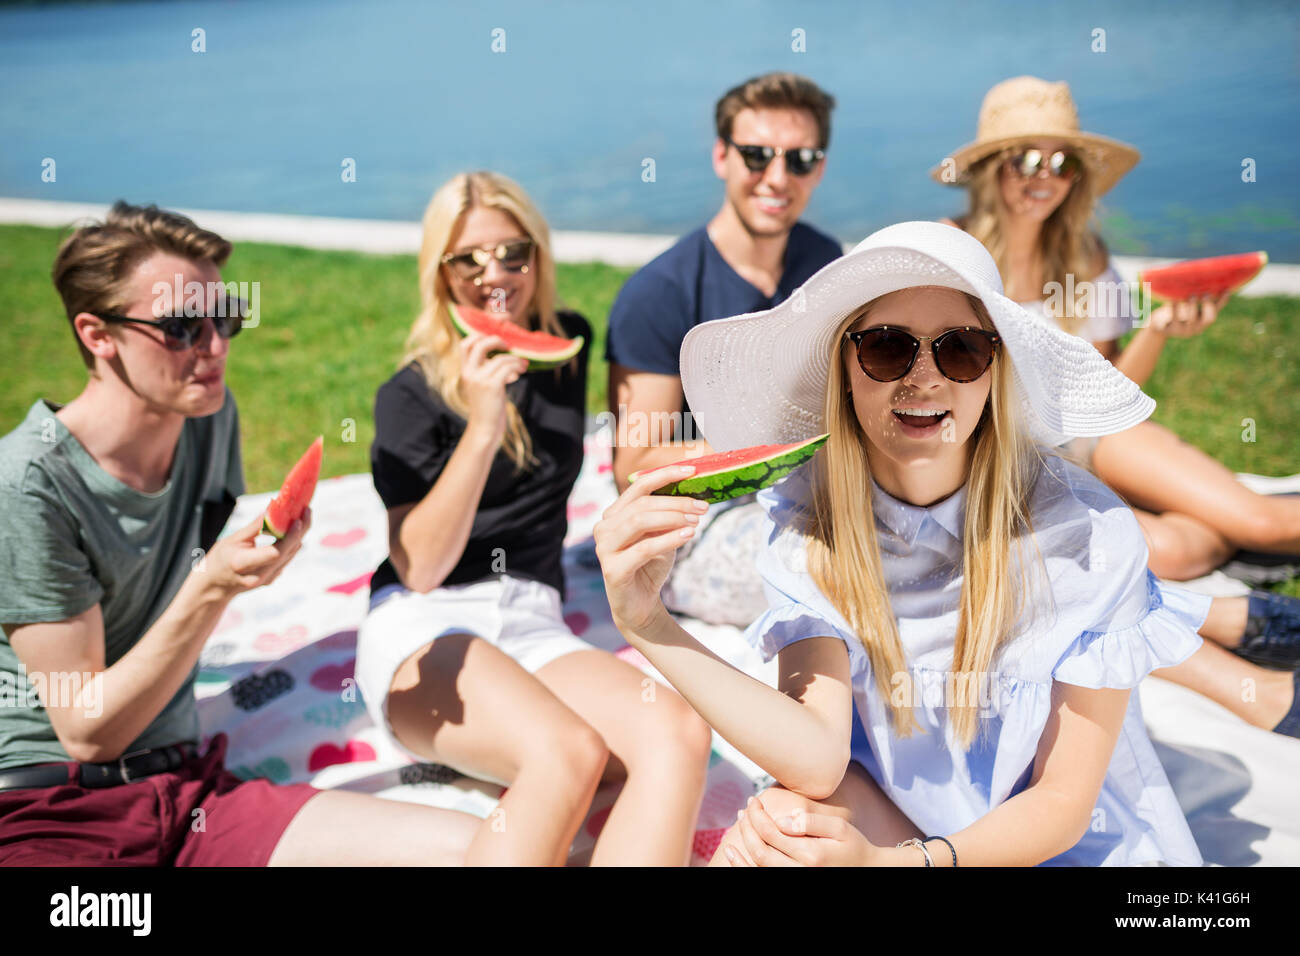 A photo of young, beautiful woman picnicking at the lake with her friends and eating watermelon. They're all having fun. - Stock Image